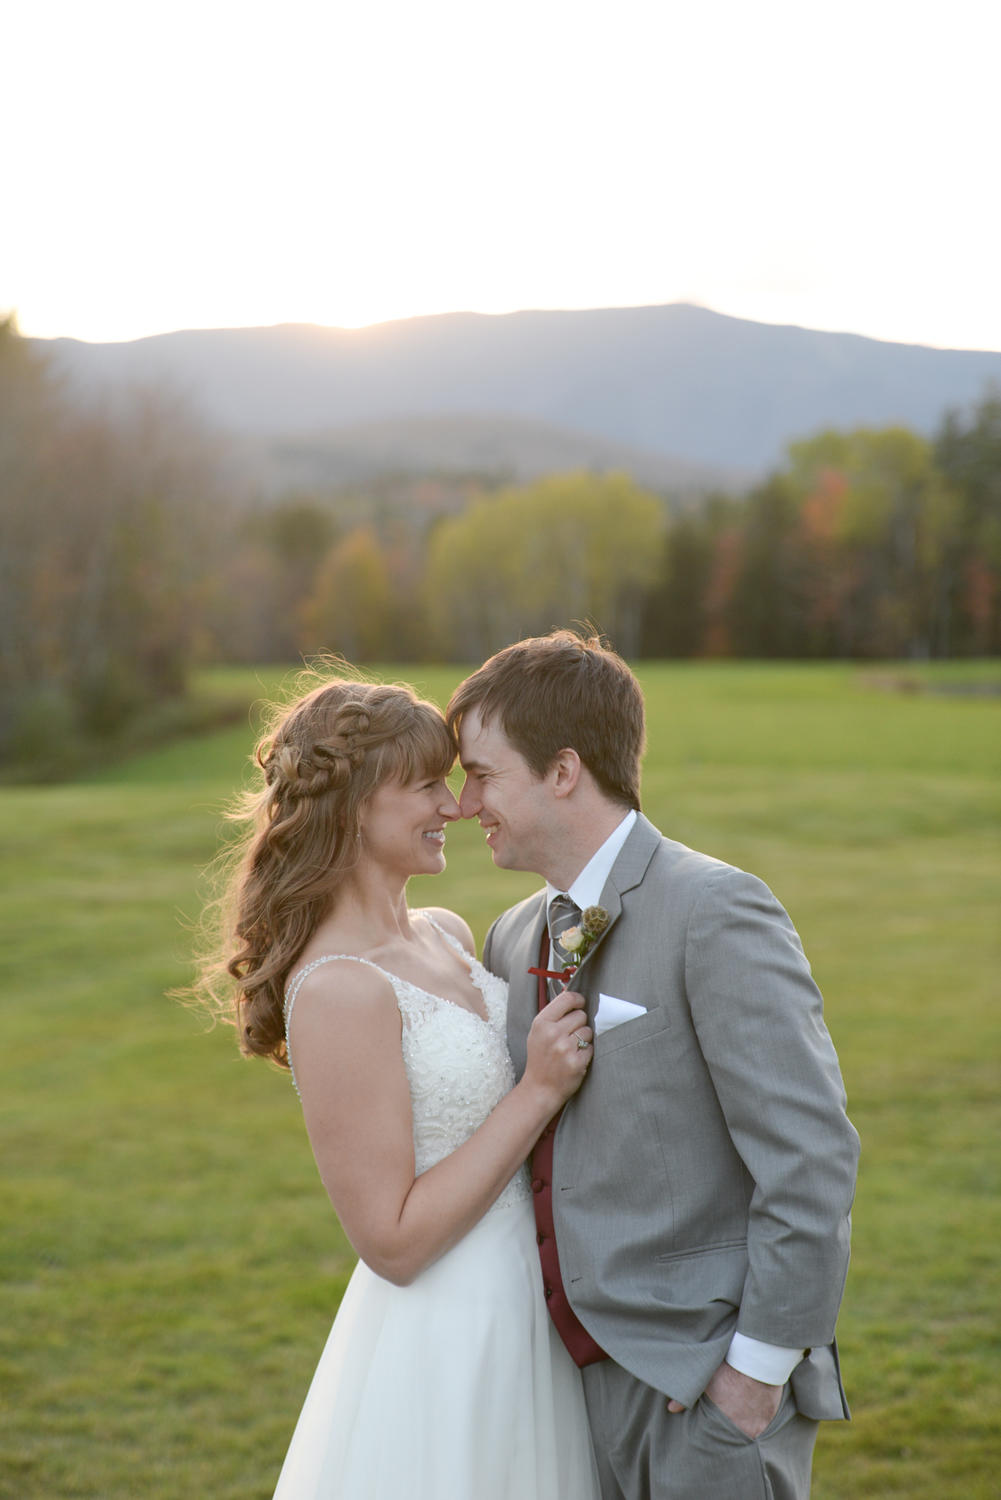 An Autumnal Vermont Wedding